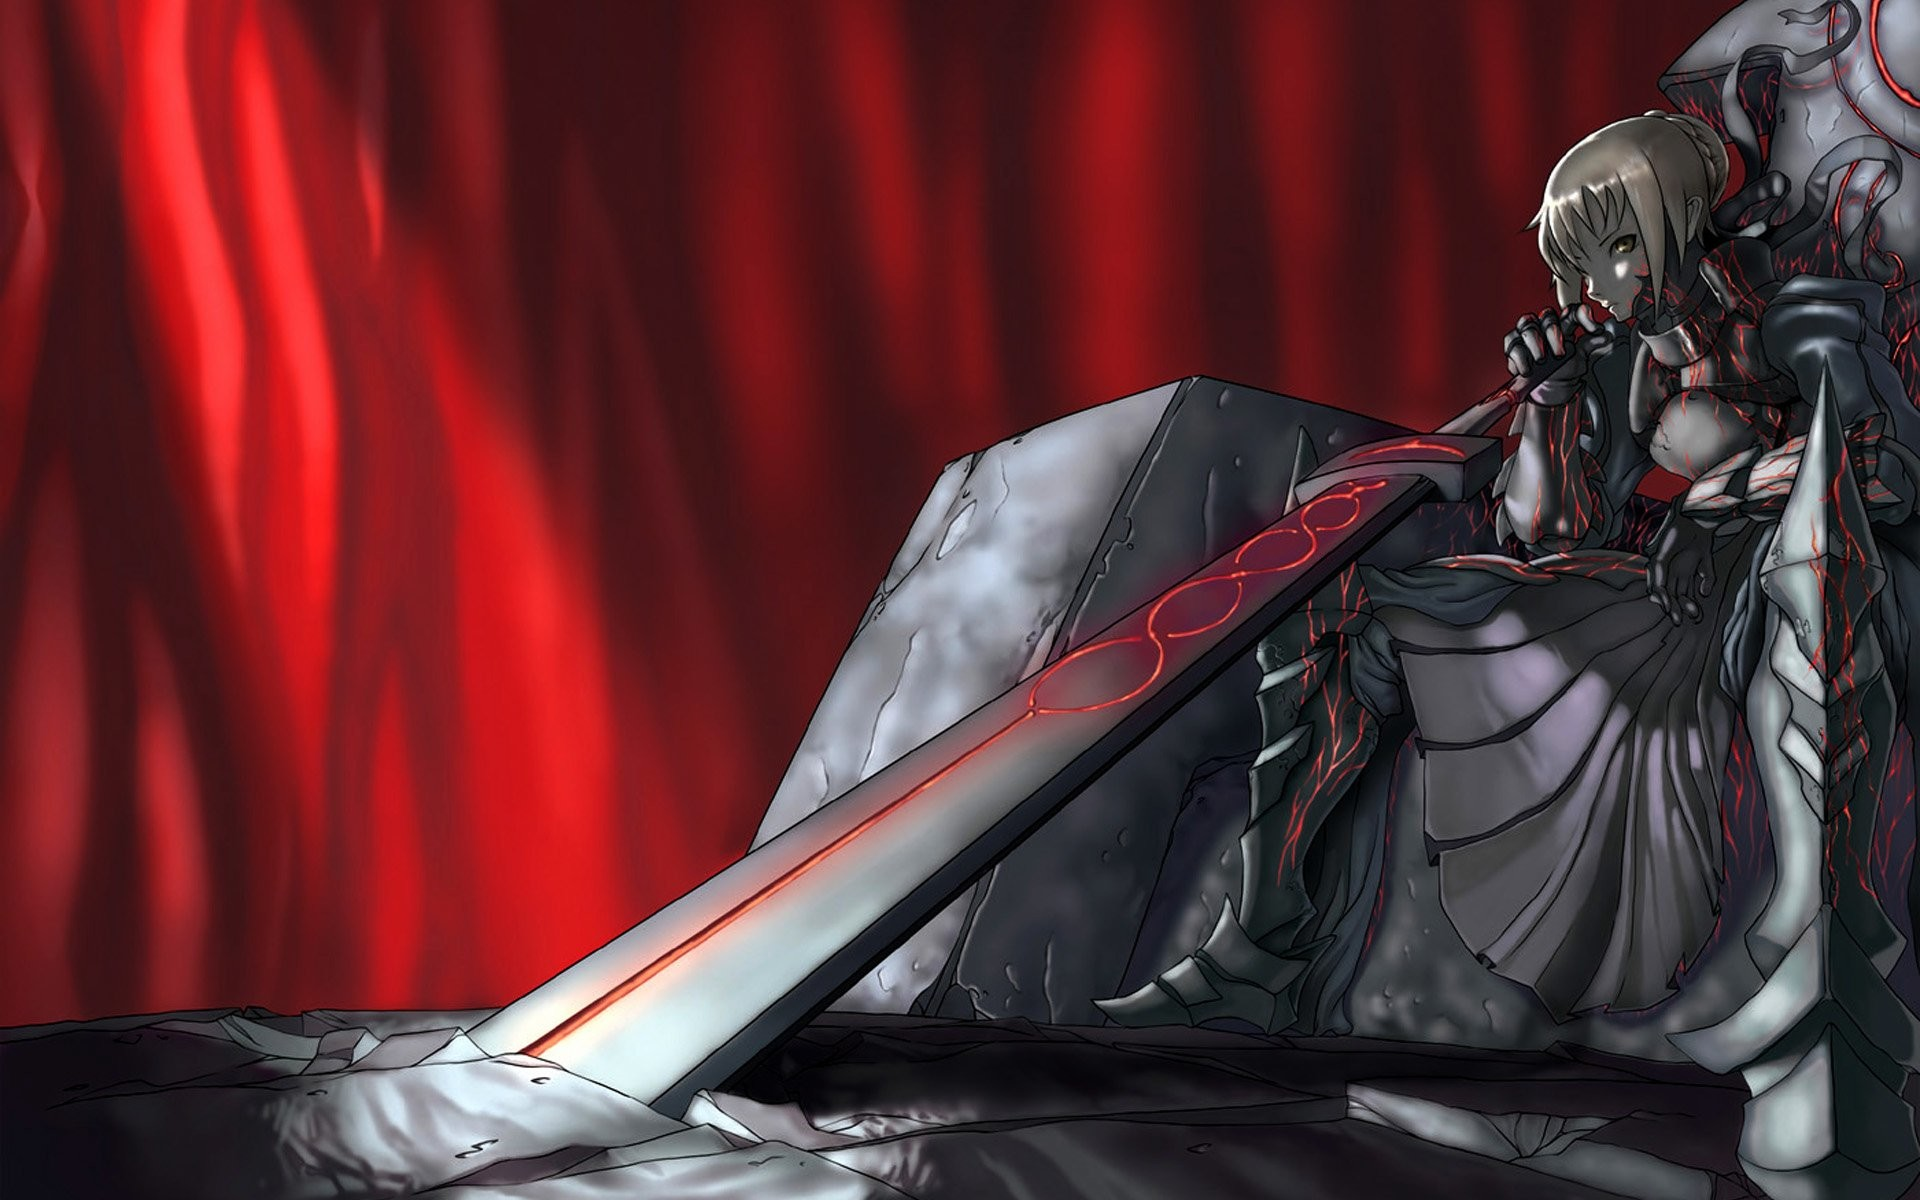 Fate Stay Night Archer Wallpaper (71+ images)